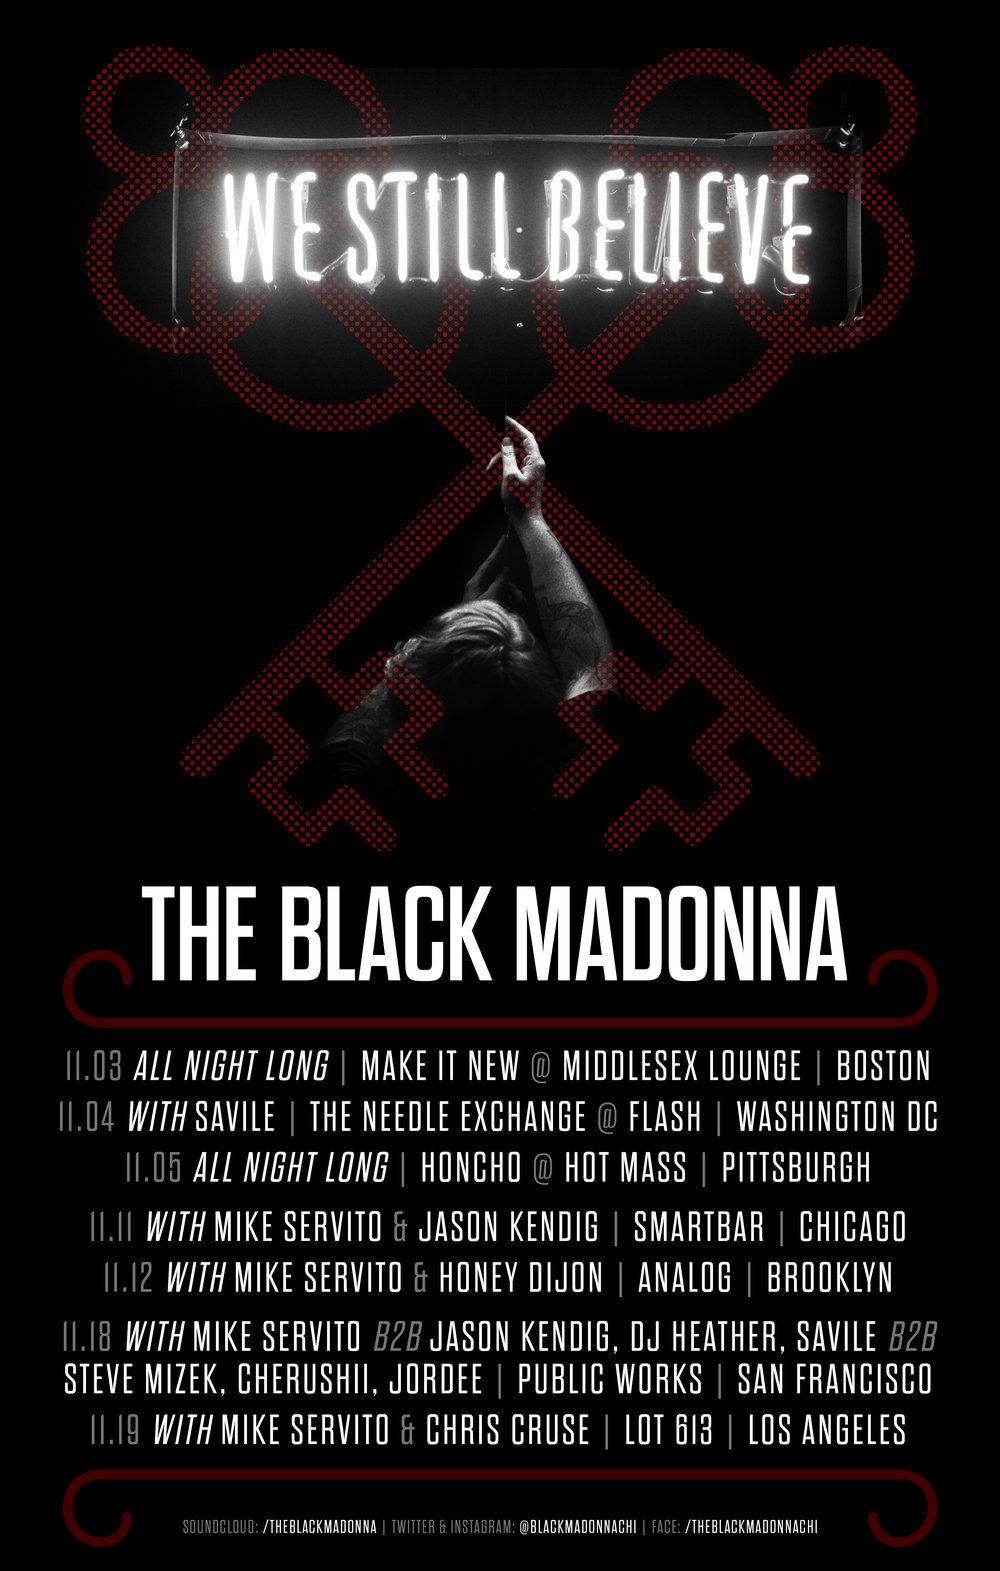 Tour Poster for The Black Madonna